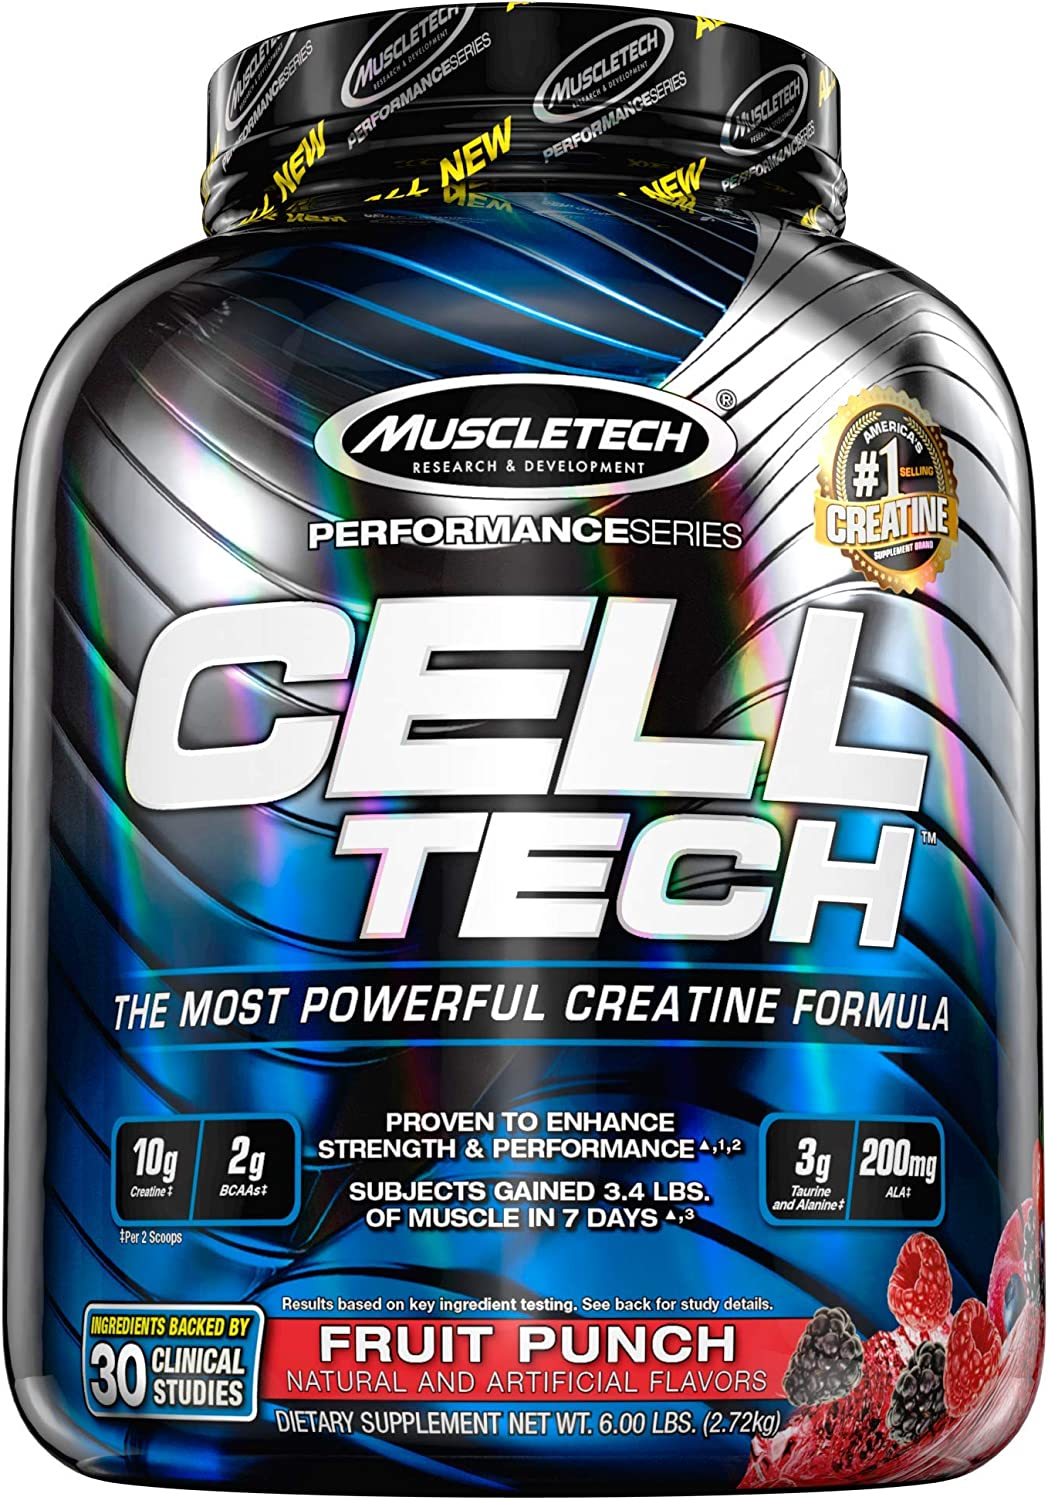 Creatine Monohydrate Powder + Carb Mass Gainer | MuscleTech Cell-Tech | Post Workout Recovery Drink | Muscle Recovery + Muscle Builder | Amino Acids, BCAA Powder | Fruit Punch, 6 lbs (56 Servings): Health & Personal Care